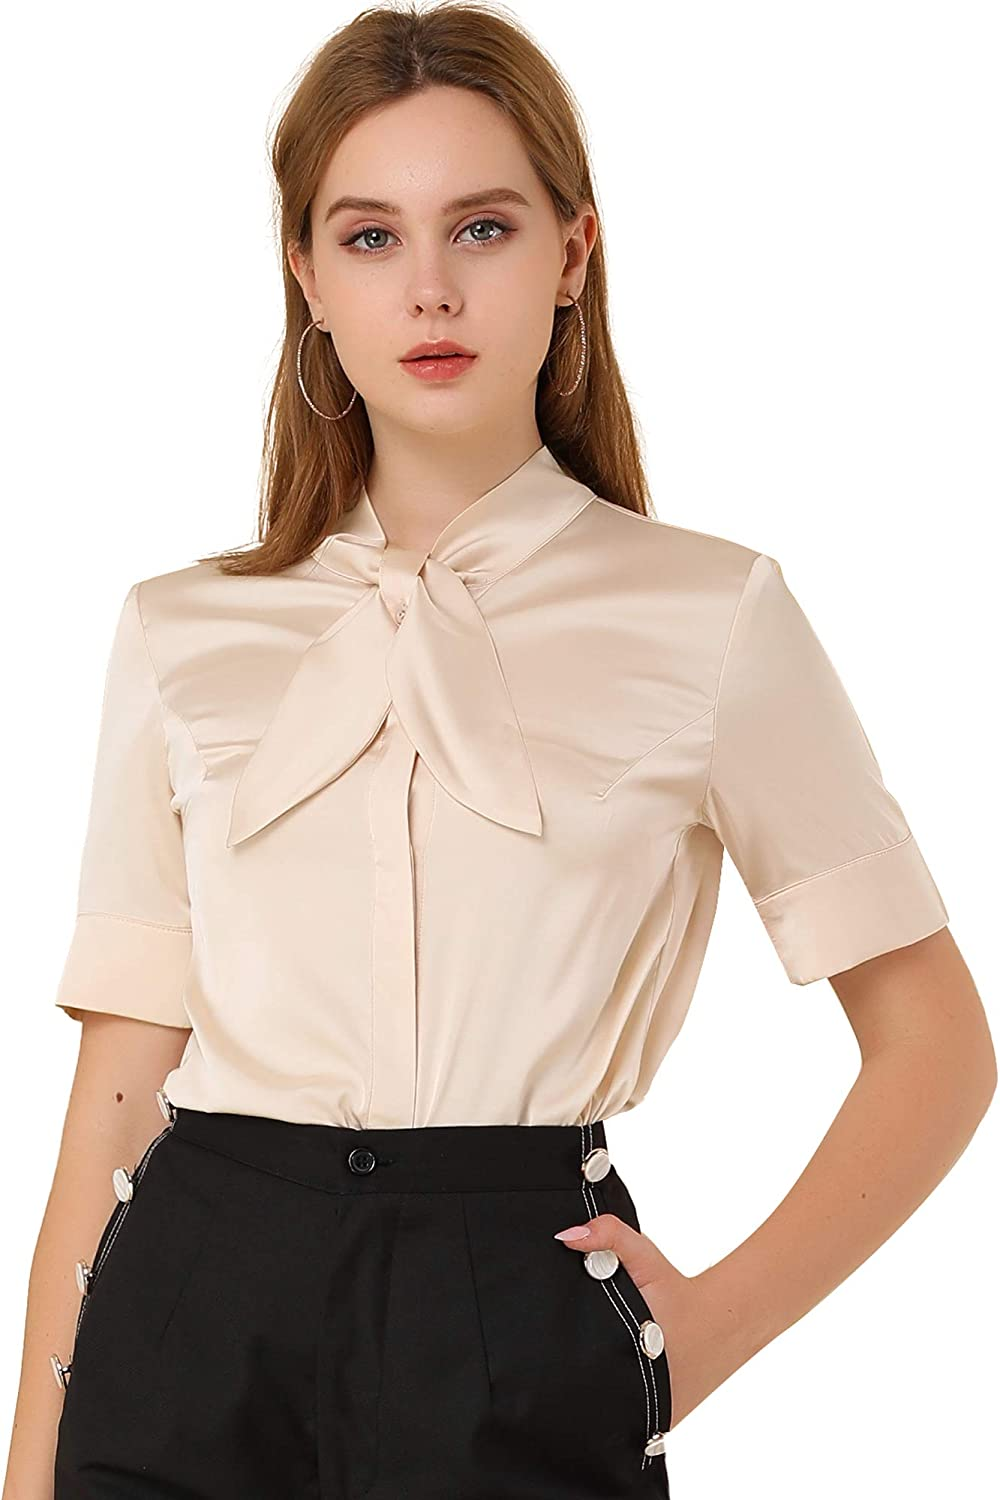 1950s Style Clothing & Fashion Allegra K Womens Satin Shirt Button Down Tie Neck Business Casual Blouse  AT vintagedancer.com